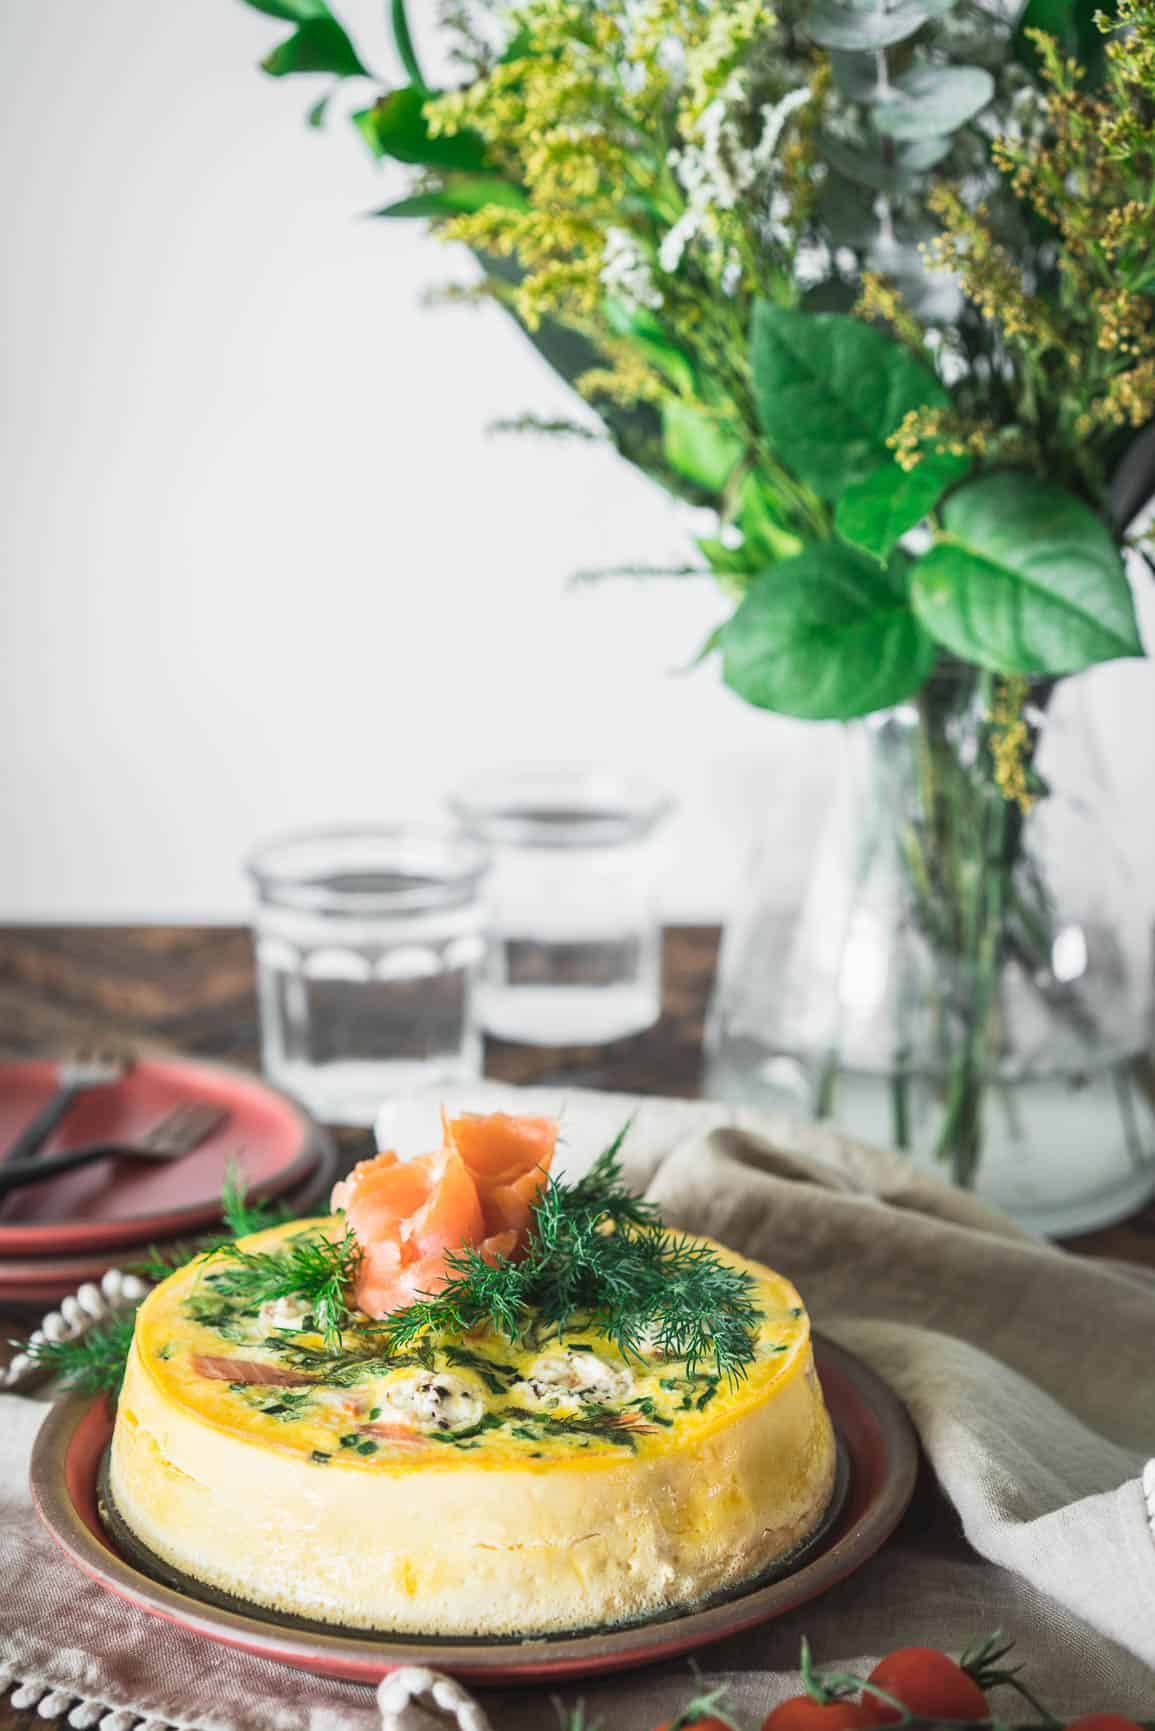 Pressure Cooker Smoked Salmon Frittata {Keto, Low-Carb & Gluten-Free}